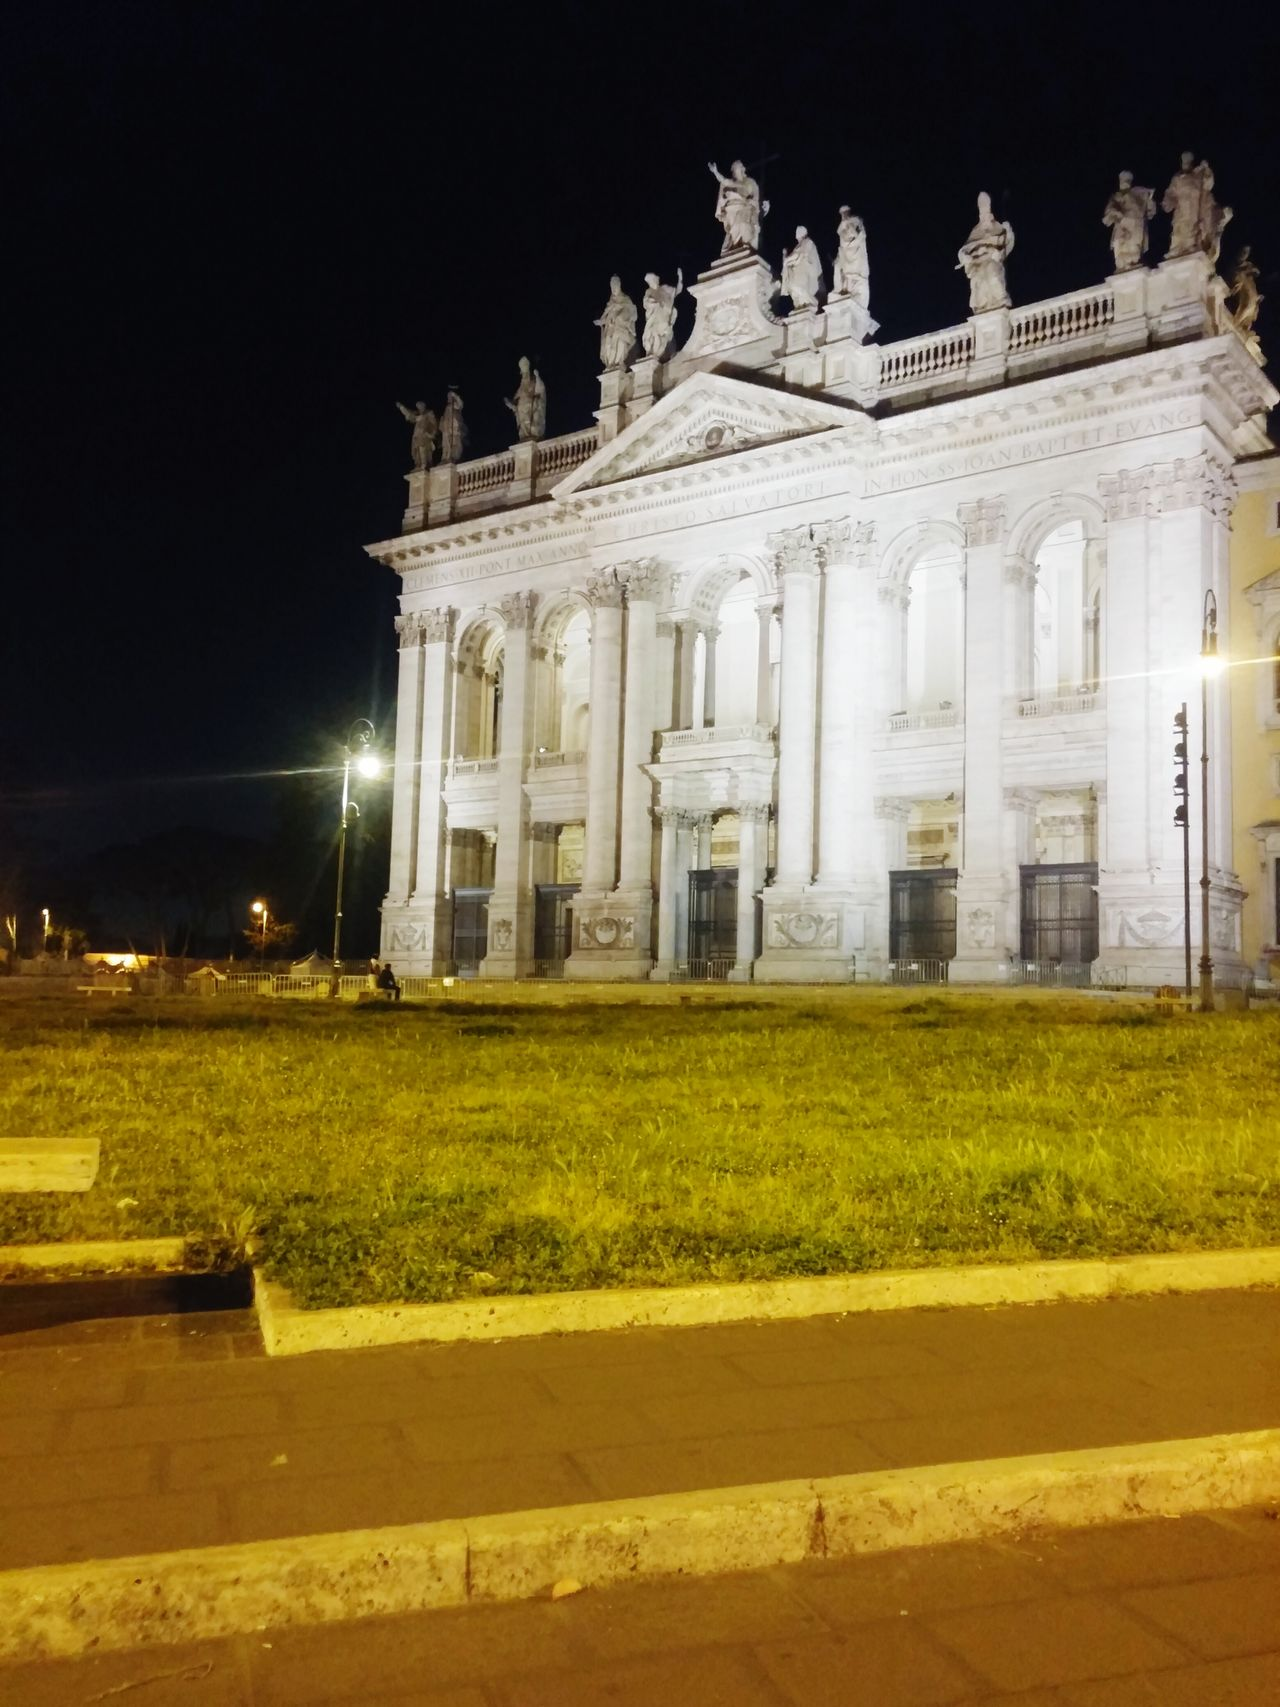 Rome By Night Rome Italy🇮🇹 Basilica Di S. Giovanni In Laterano Built Structure Illuminated Architecture Night History No People Building Exterior Nightphotography Night Shot Outdoor Photography Street Photography Night Lights My Own Photography No Filter